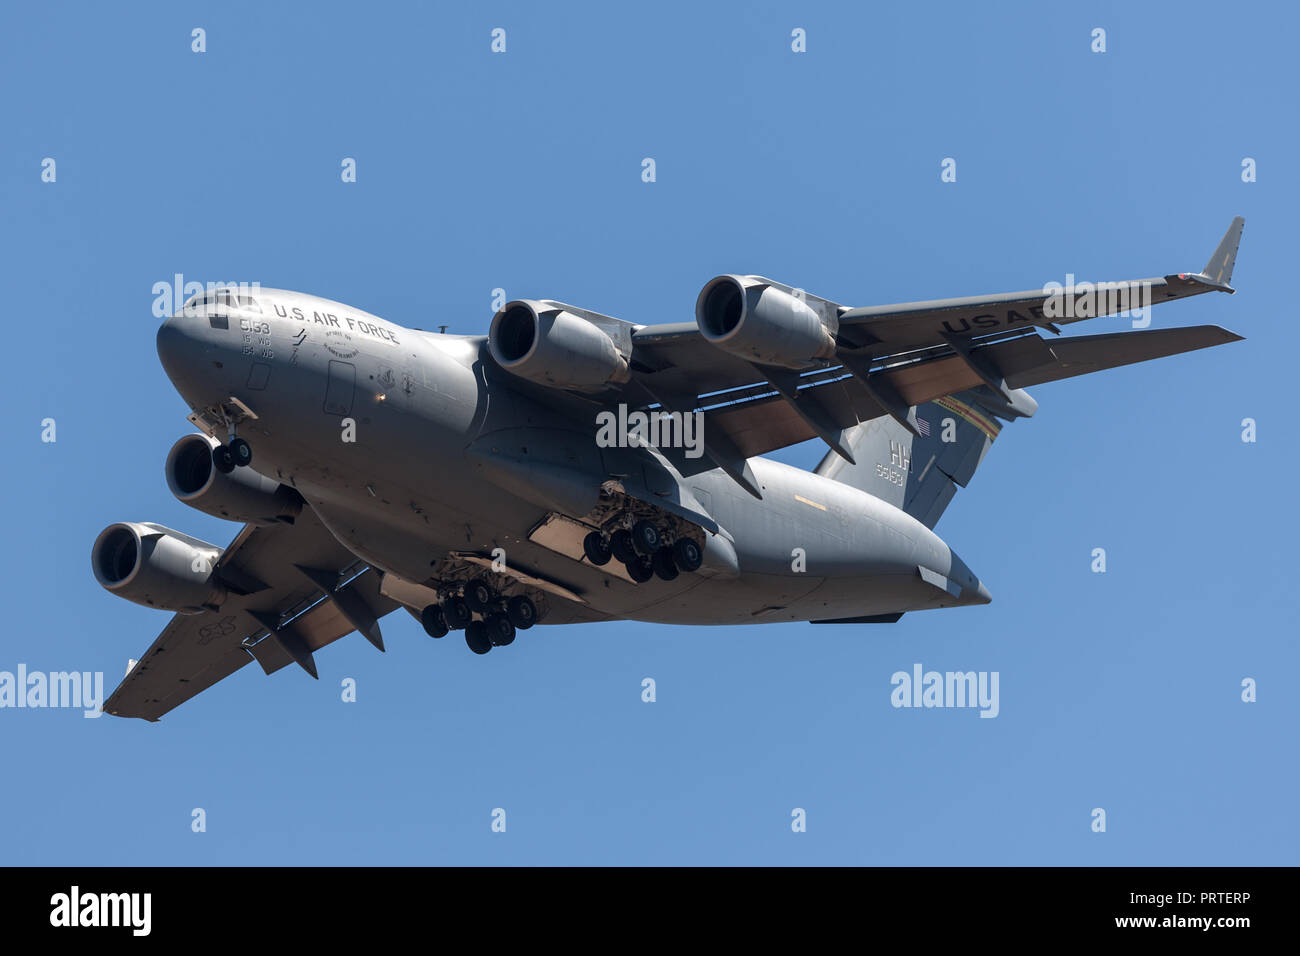 United States Air Force (USAF) Boeing C-17A Globemaster III military transport aircraft 05-5153 from the 535th Airlift Squadron, 15th Airlift Wing bas - Stock Image